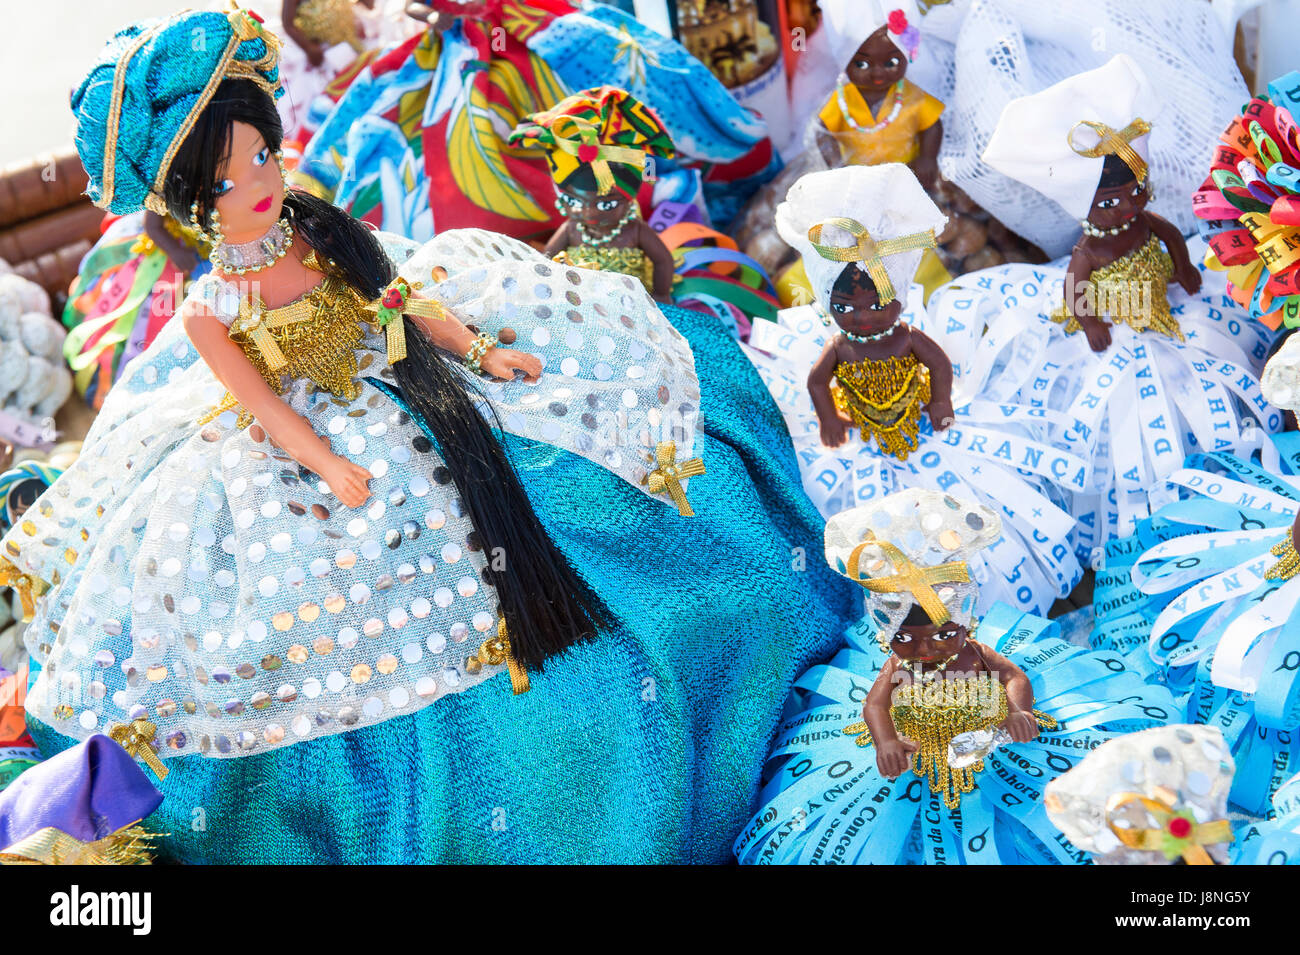 Souvenir figurines of the Yoruba goddess Yemanja stand on display at the annual festival dedicated to her in Salvador, - Stock Image